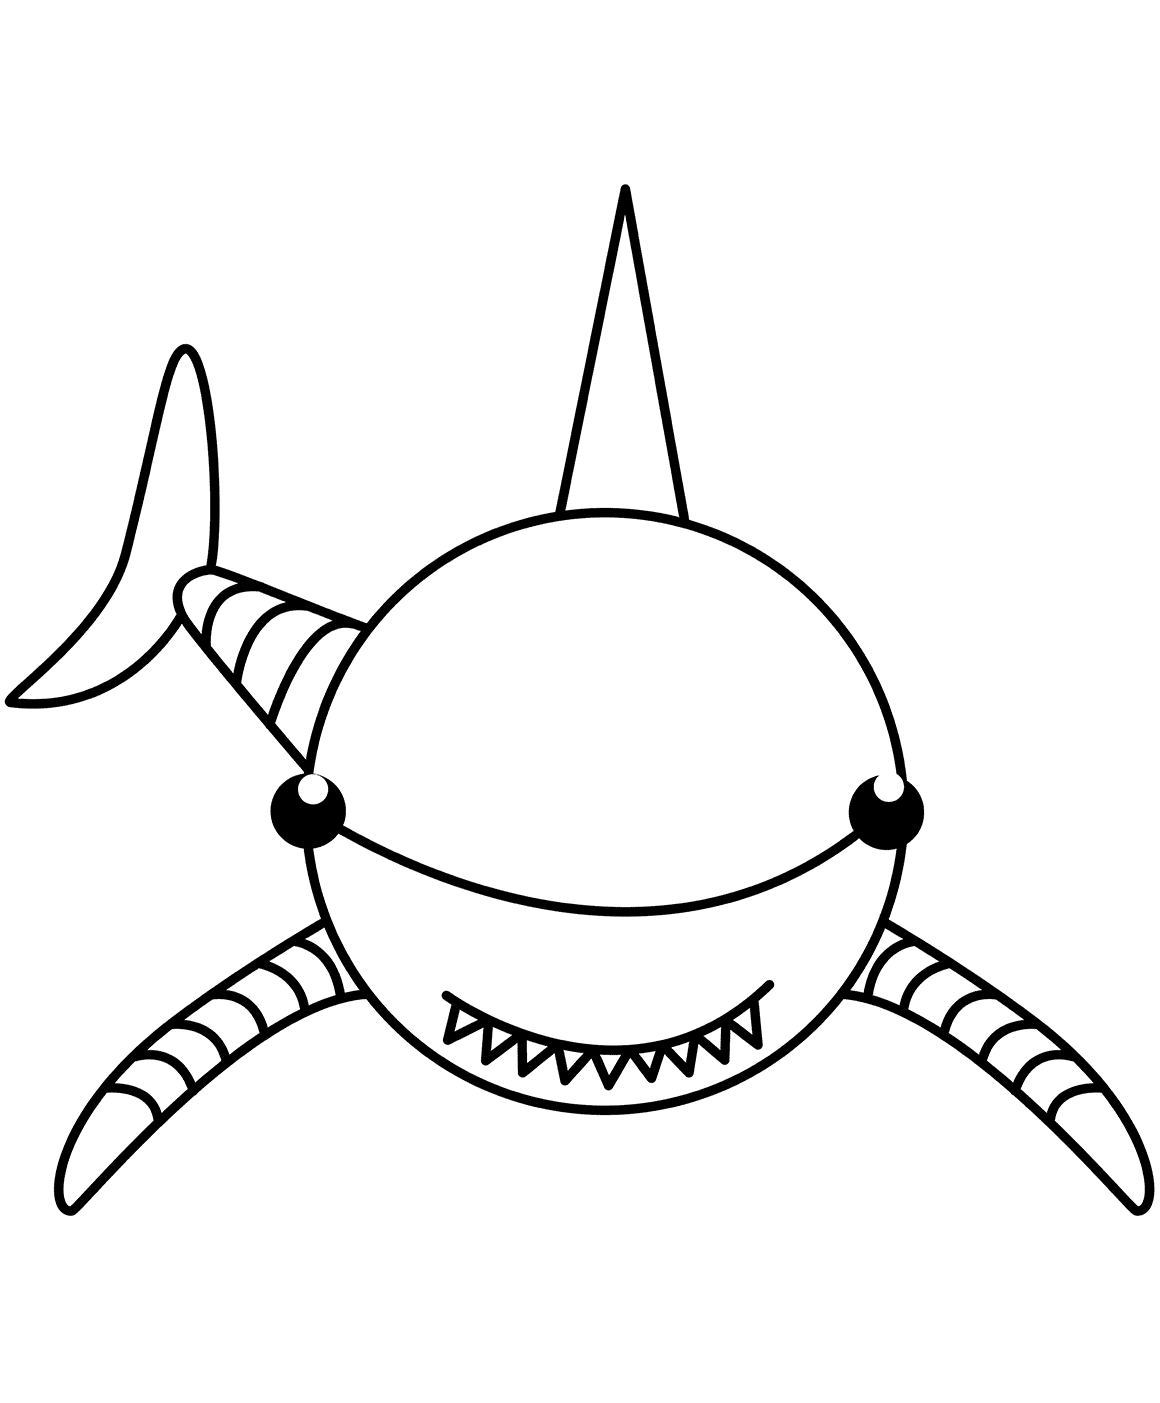 Shark Coloring Page For Preschoolers